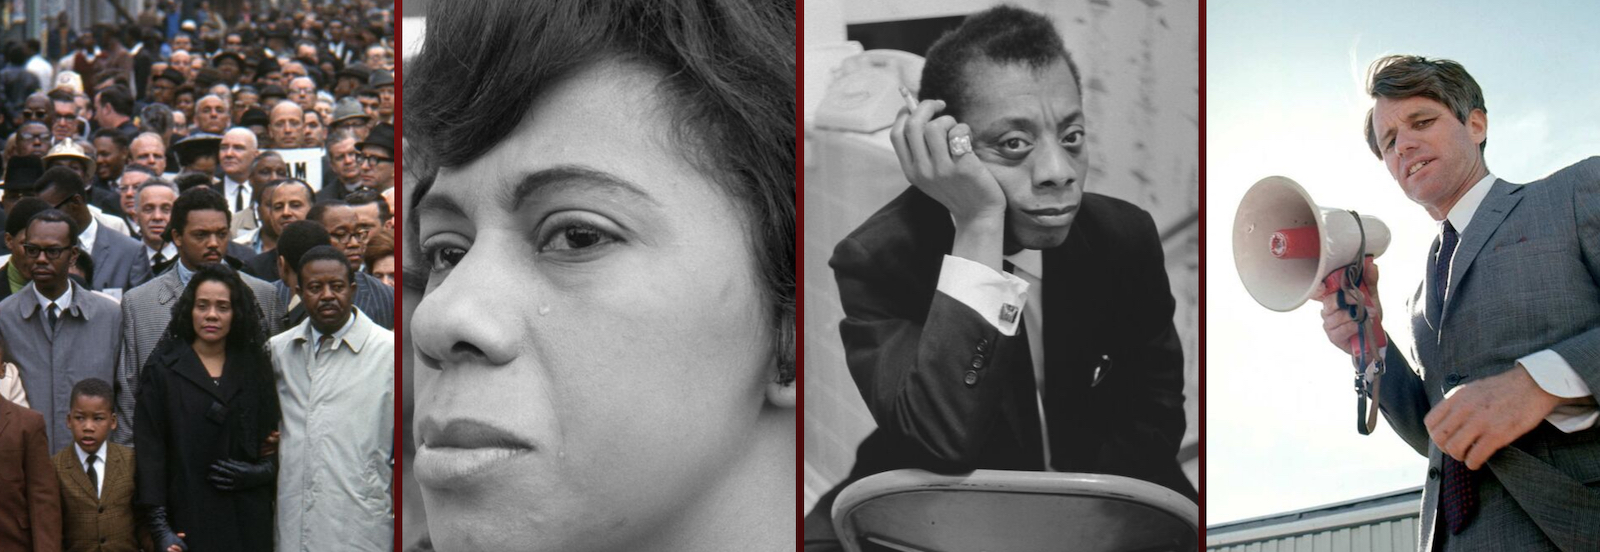 Left photo: Coretta Scott King leads a silent march of tens of thousands of national mourners from Clayborn Temple to City Hall. April 8, 1968. Center left photo: April 1968. Minerva Johnican grieves the death of Dr. Martin Luther King. Johnican went on to be a pioneer in her own right in Memphis, becoming actively involved in politics, running for mayor of Memphis in 1987. Center right photo: James Baldwin, circa 1961, a novelist and playwright, who was also a formidable civil rights activist who inspired other artists and the public to challenge segregationist laws and practices in America through his writings, public speaking and other forms of activism. Right photo: Robert F. Kennedy on the Campaign trail (1960). All photos: © Art Shay Archives Project, LLC 2019 | All rights reserved.